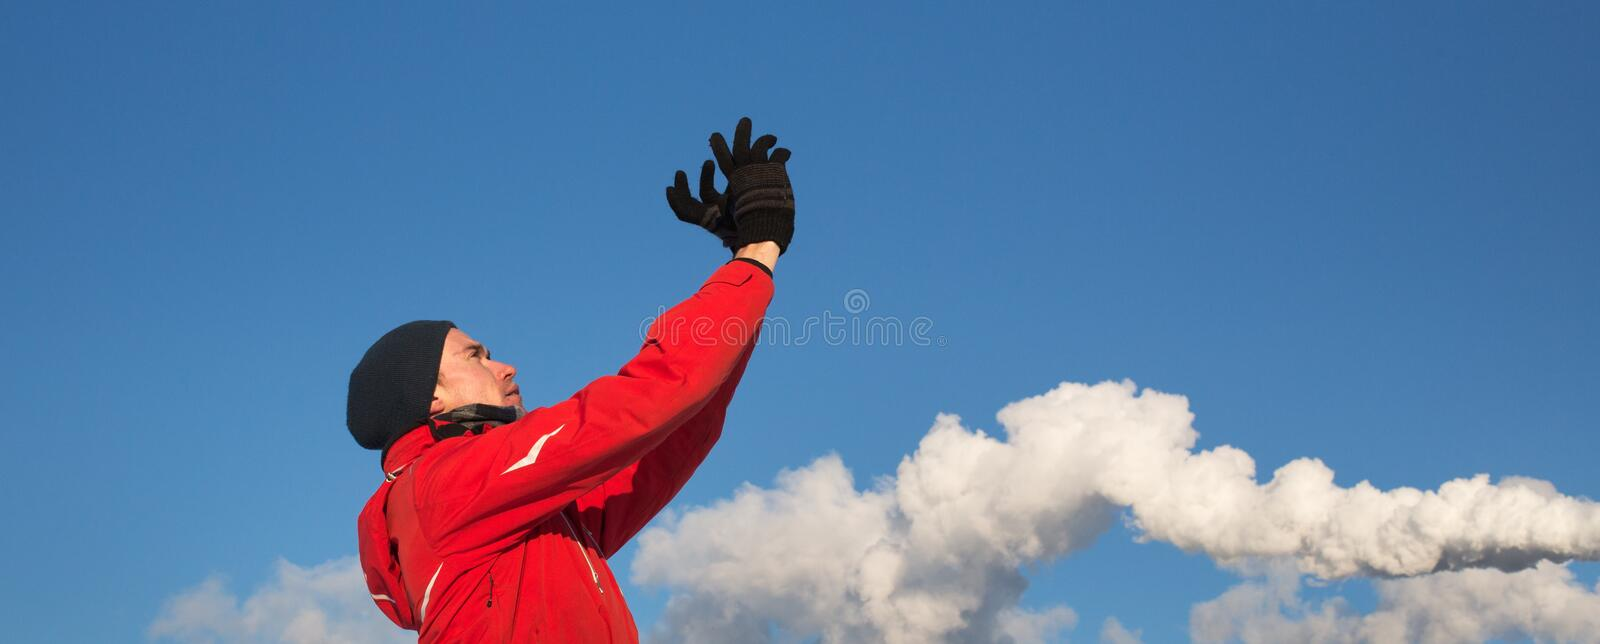 A man in red jacket looking at sky with hands holding up. Blue sky and smoke background royalty free stock images